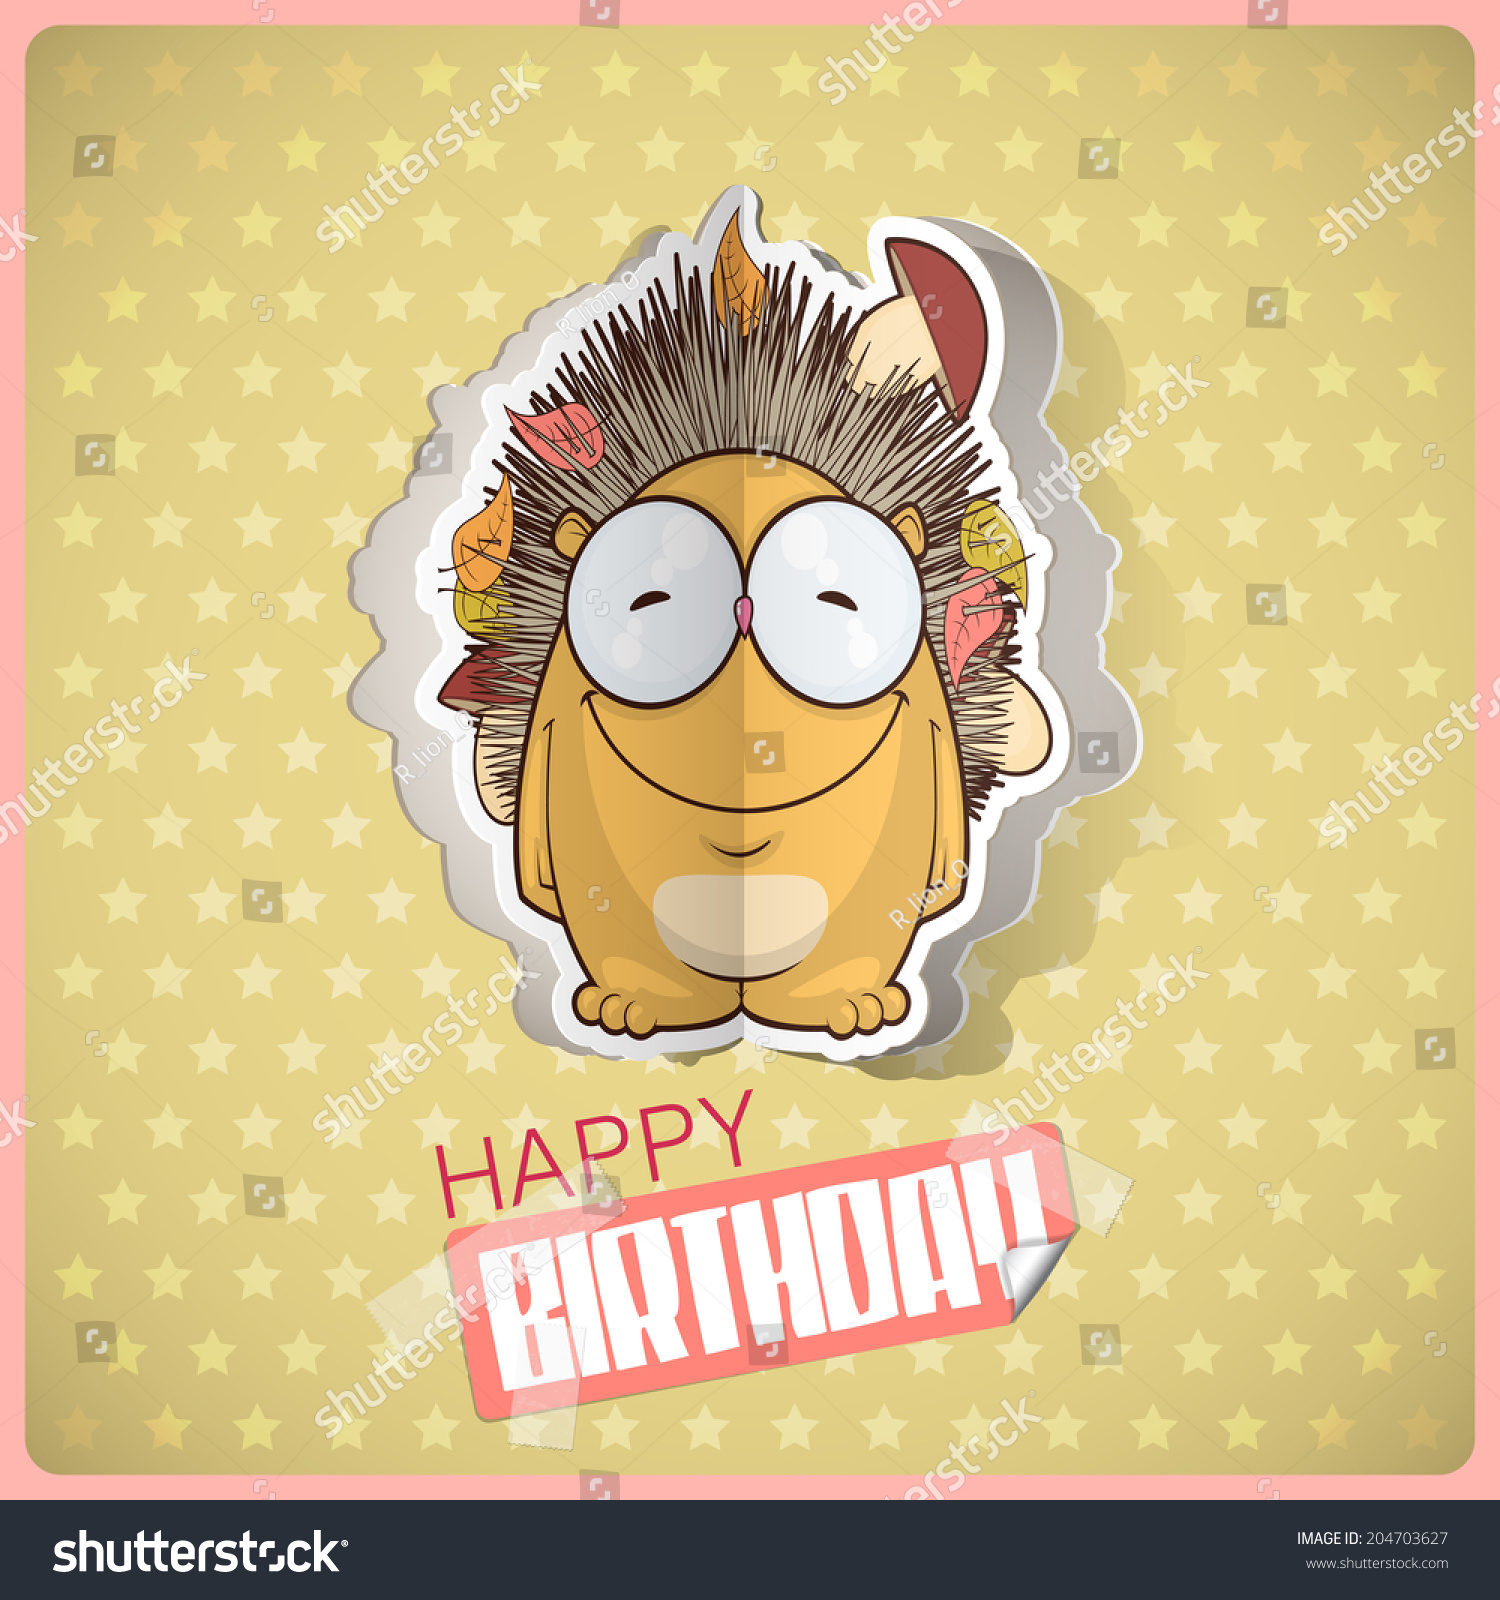 Birthday Greeting Card Cartoon Hedgehog Character Stock Vector